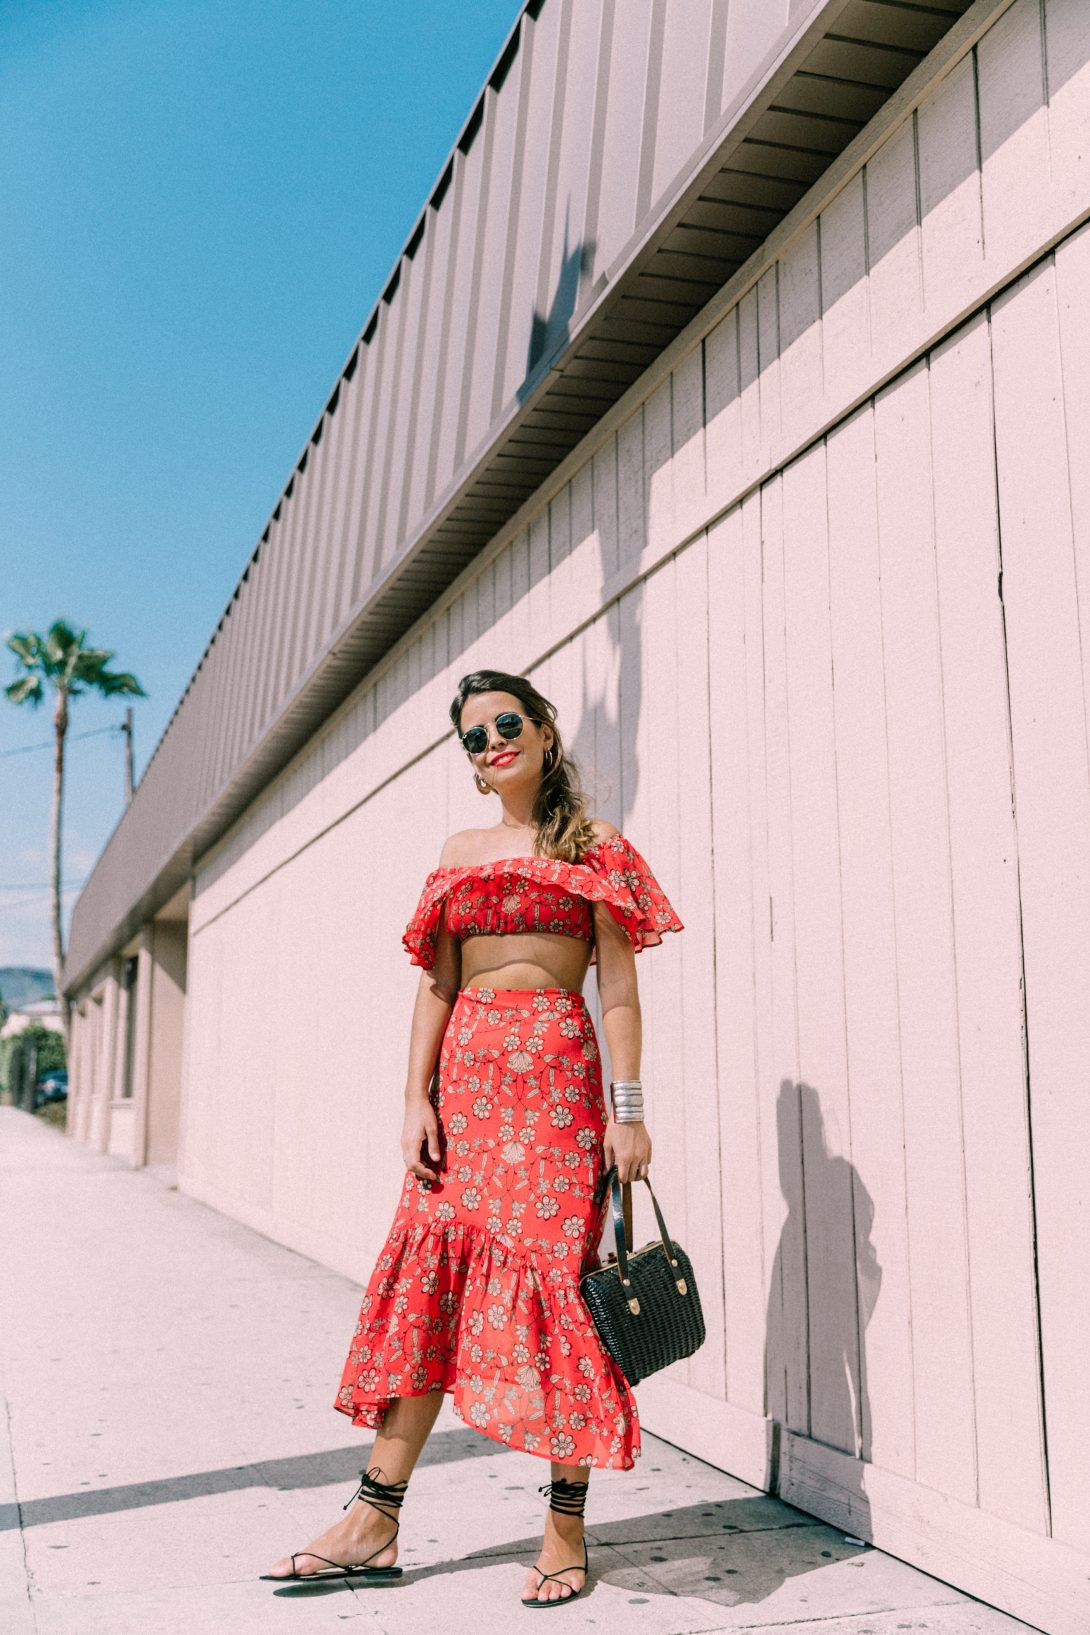 For_Love_And_Lemons-Raffia_Basket-Vintage-Cropped_Top-Midi_Skirt-Lace_Up_Sandals-Revolve_Clothing-Outfit-Collage_Vintage--22